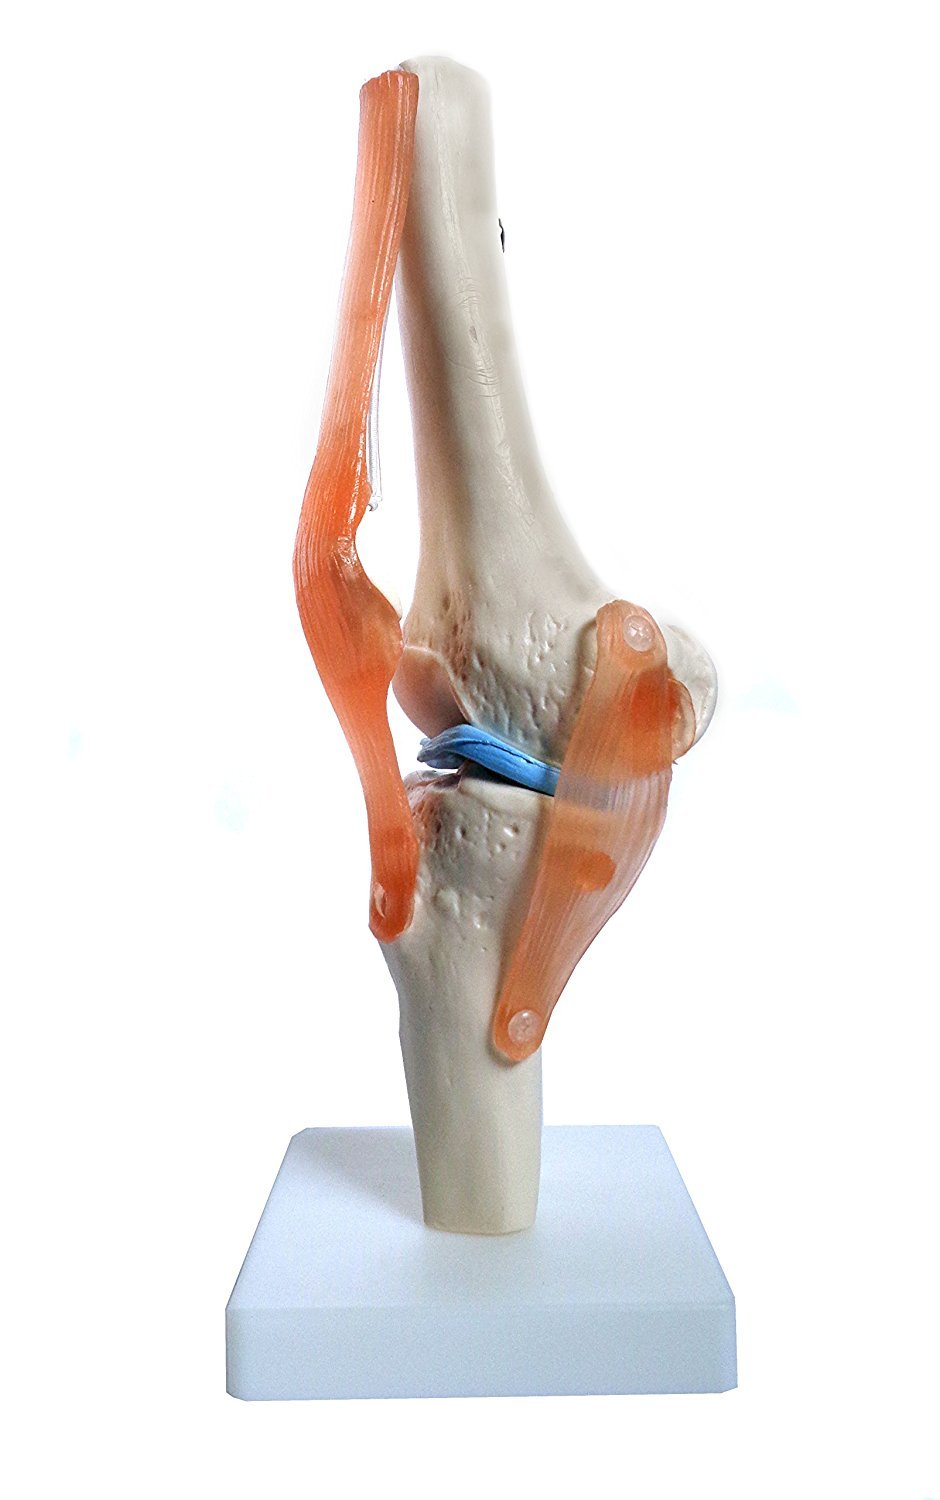 Anatomy Model Of Human Knee Joint Bones Anatomical Joint Models For